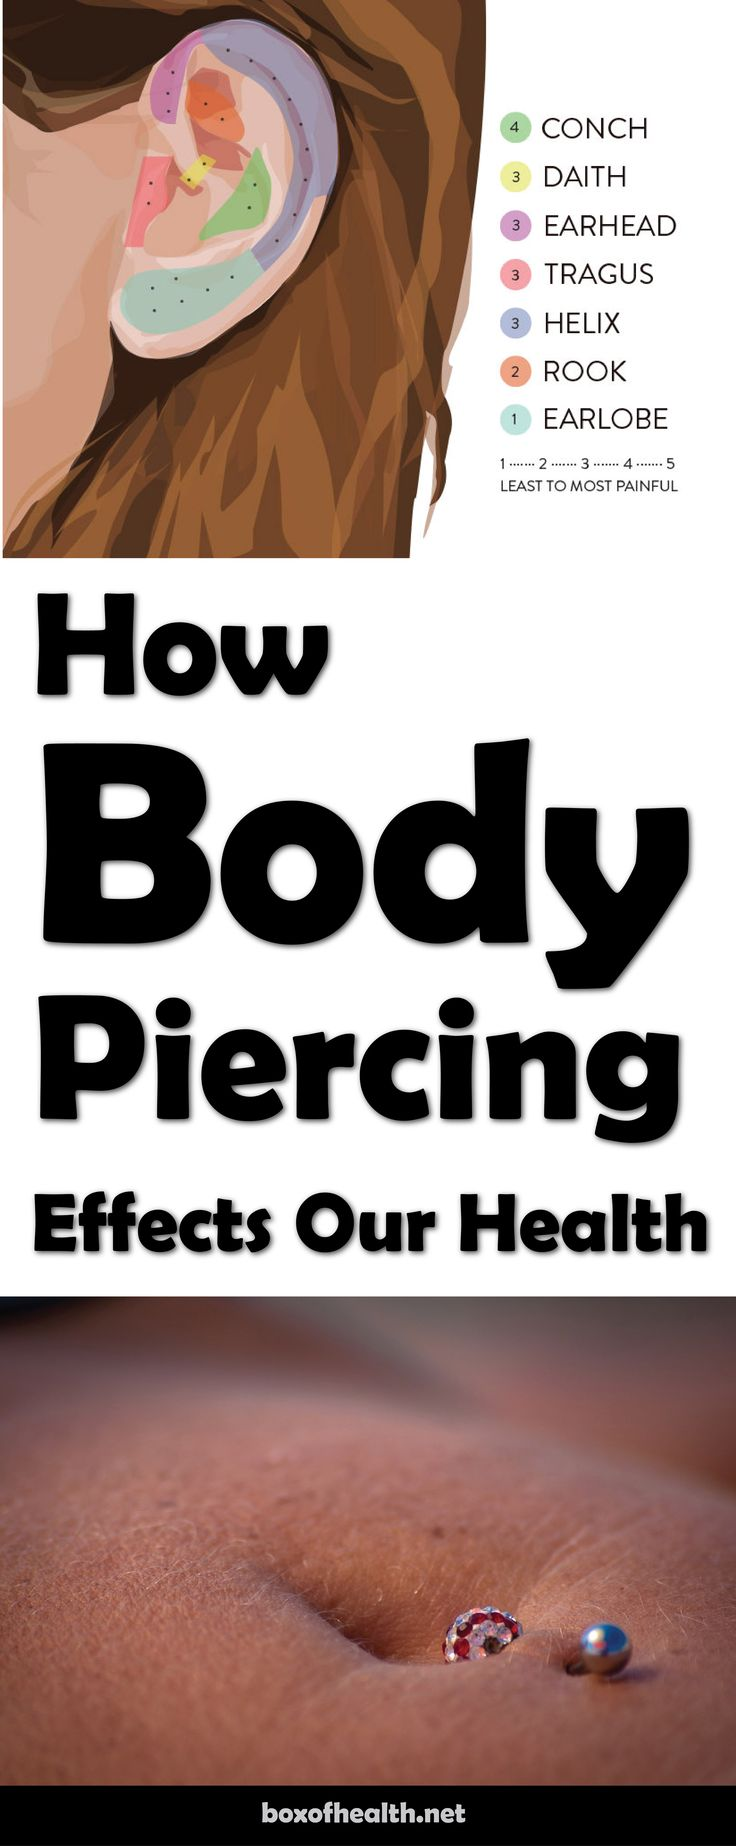 Body piercing is when a hole is made in your skin or through a part of your body so you can add a piece of jewelry for decoration. The earlobe is the most common body piercing. Other common places to pierce include the eyebrow, nose, tongue, lip, belly button, nipples, and genitals. Some people also pierce their ear cartilage (the hard part of the outer ear).